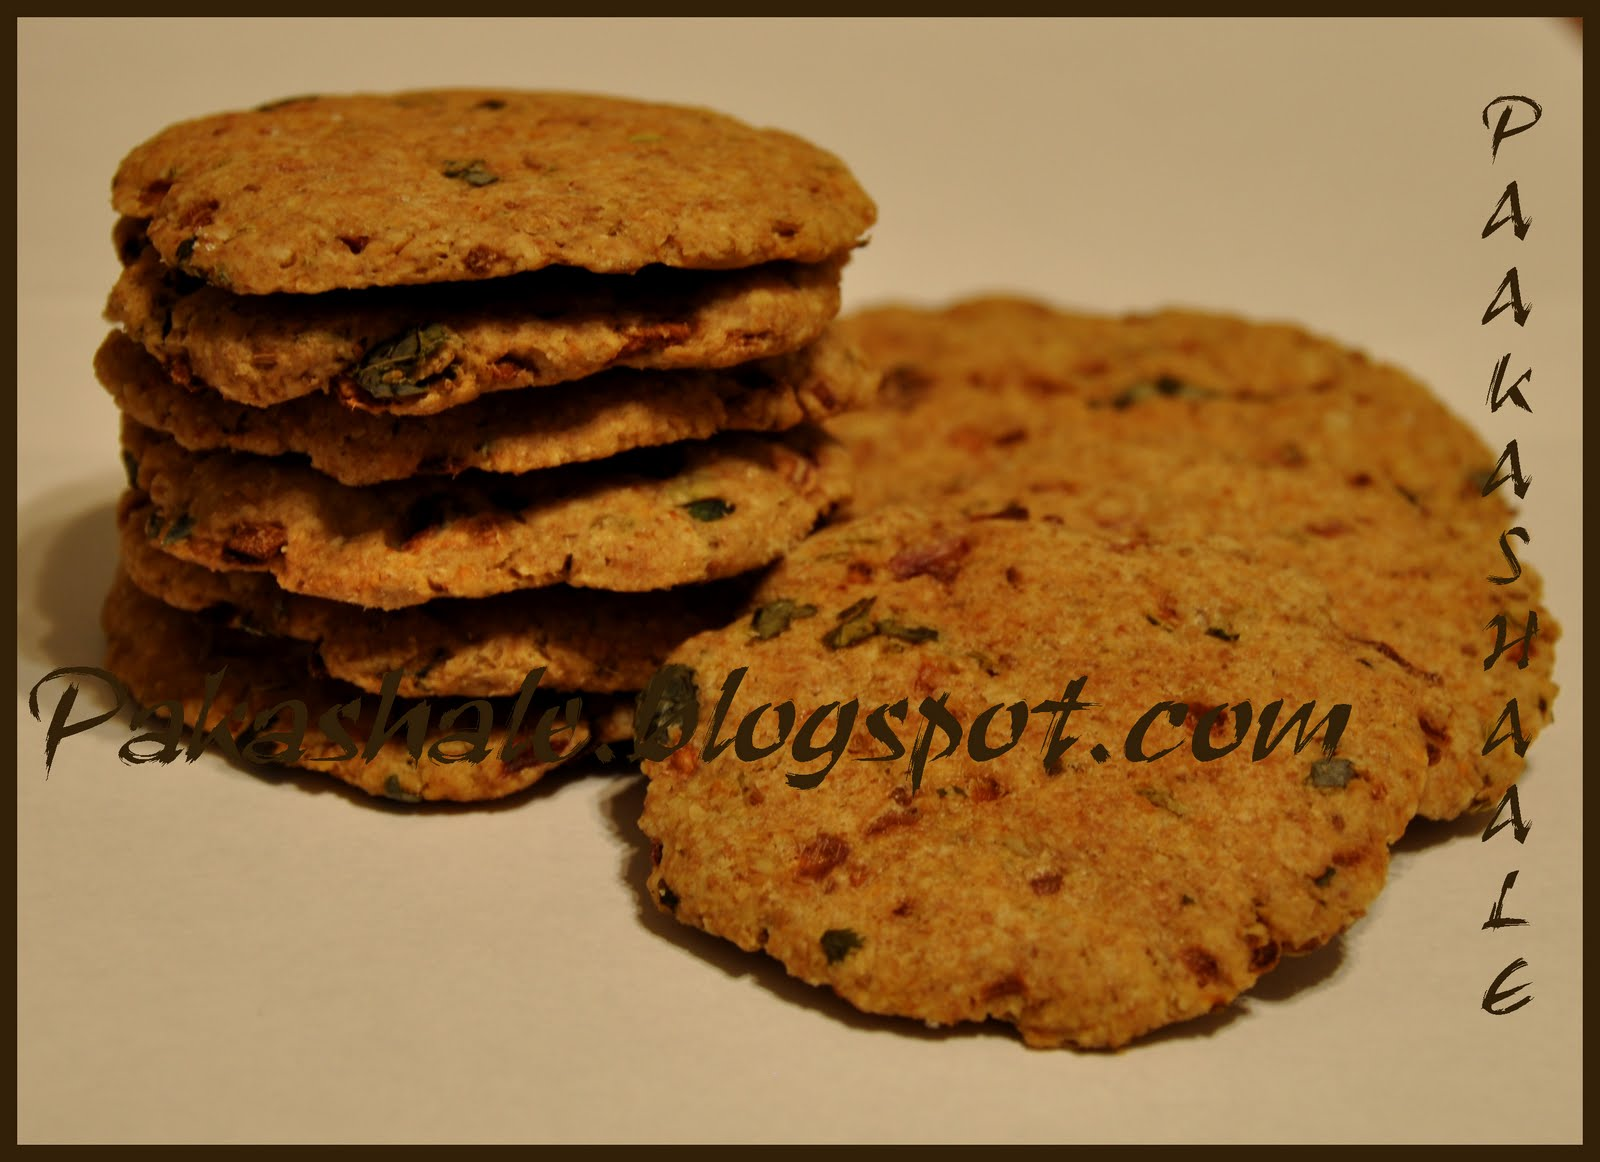 ingredients oats 2 cups i used old fashioned oats whole wheat flour 1 ...